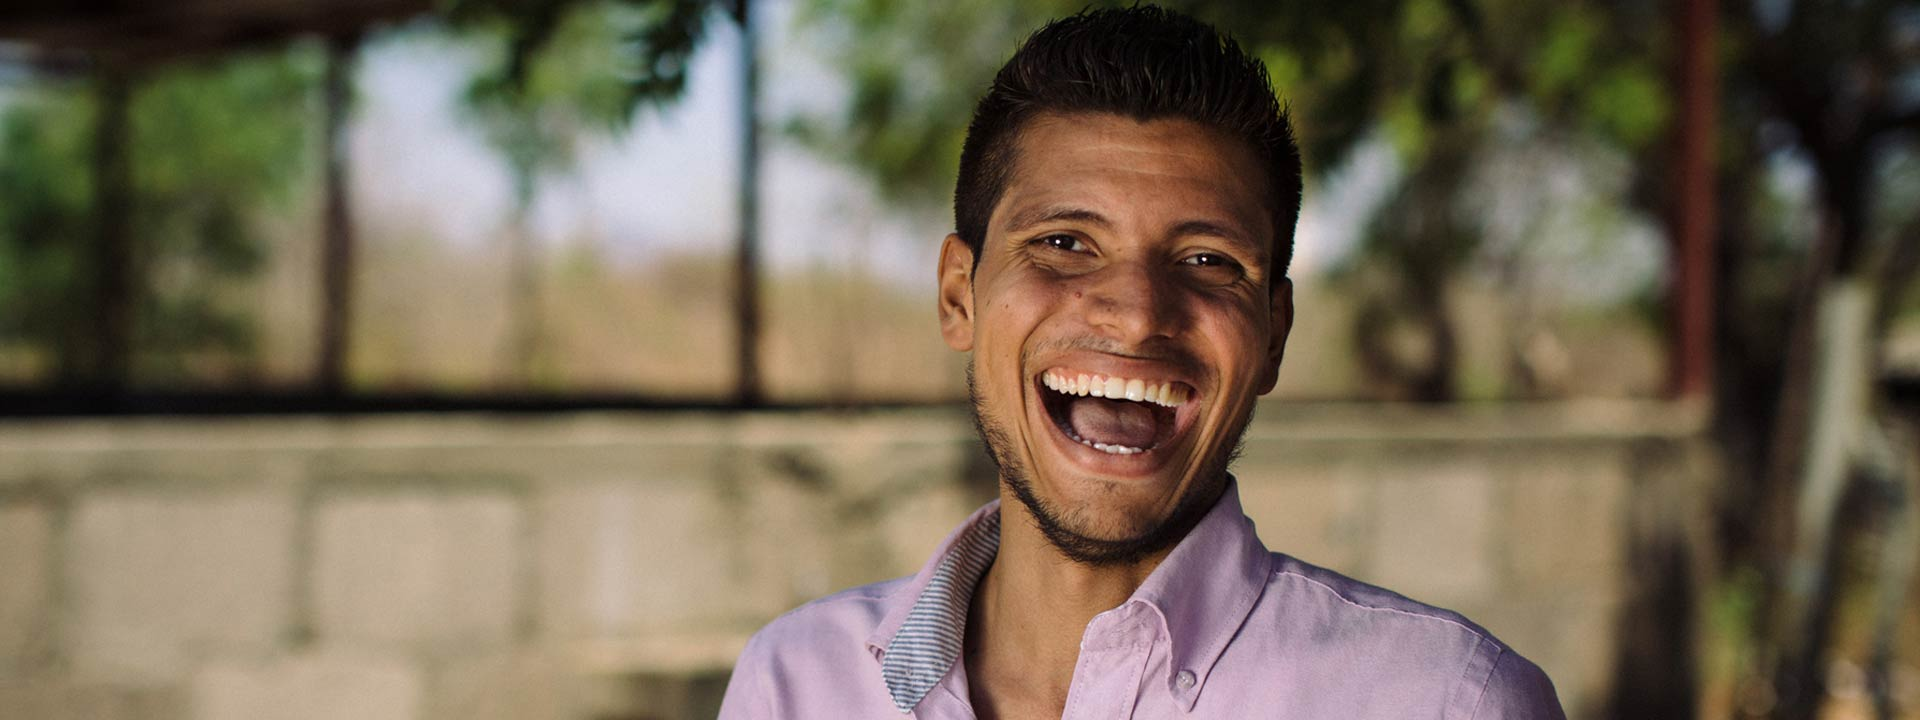 Oscar smiles while working at the church he pastors